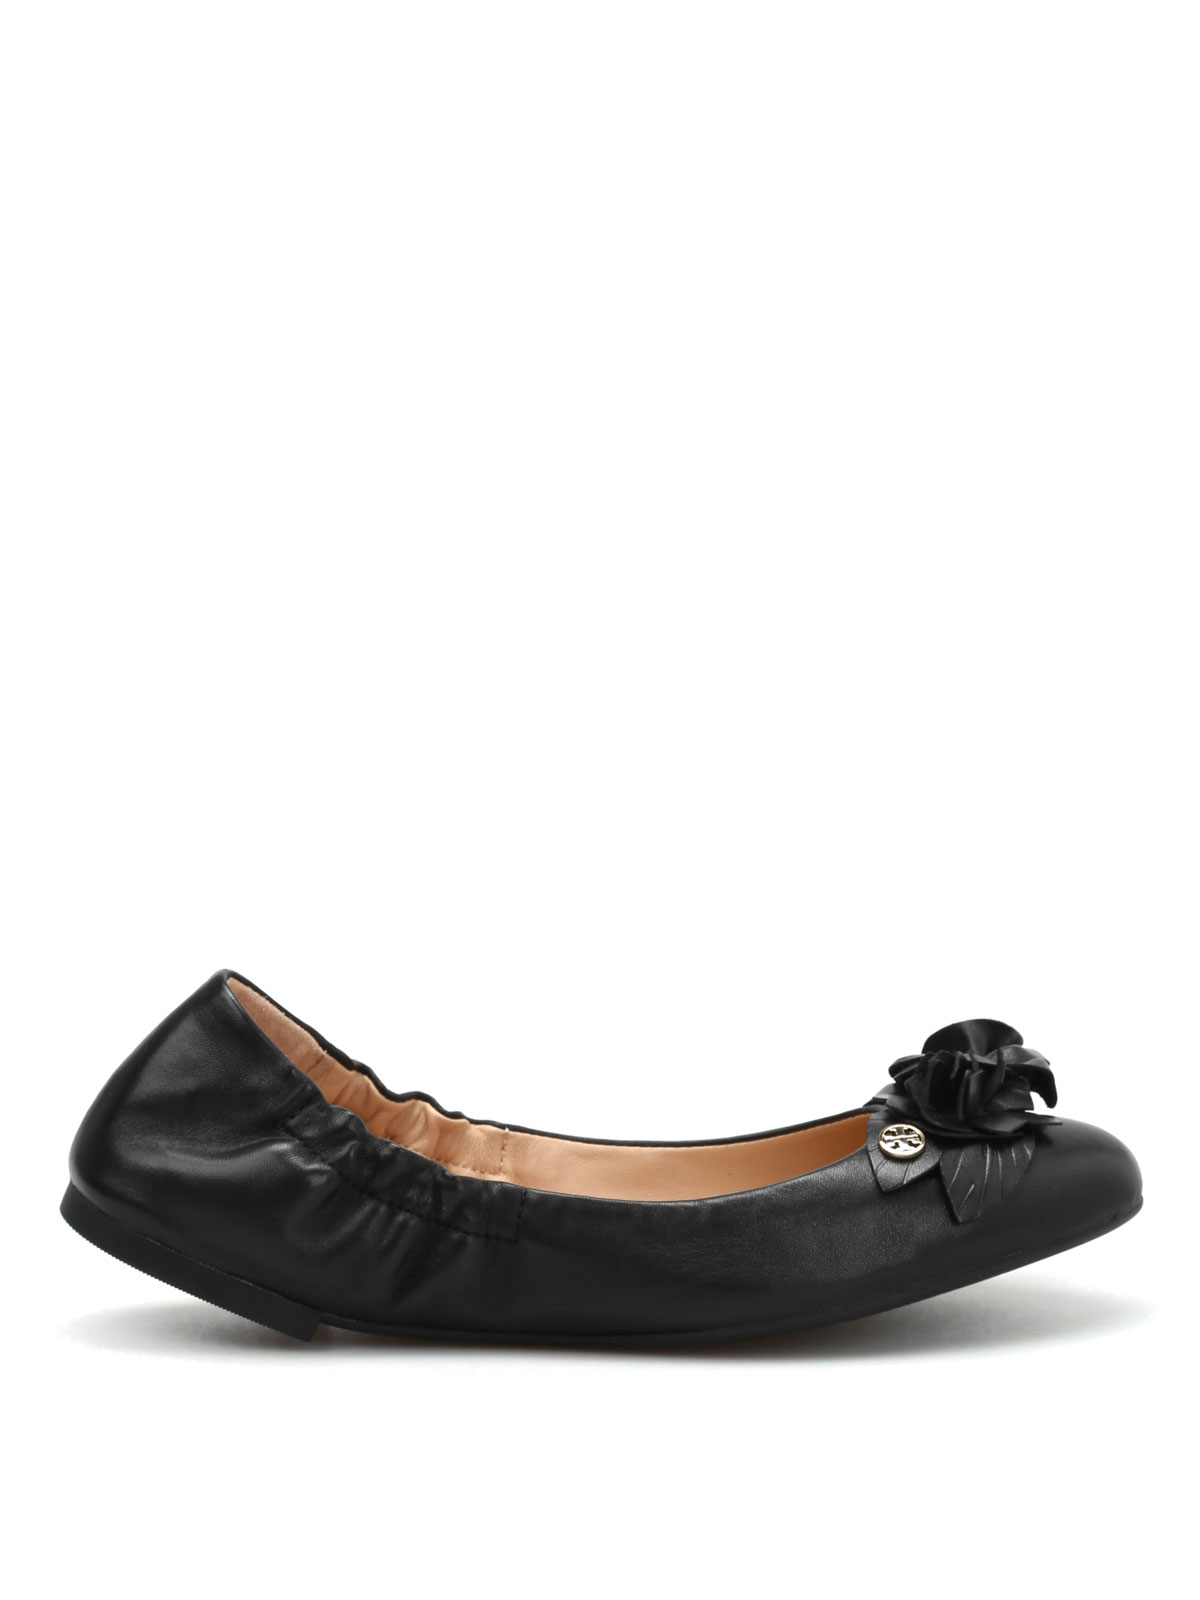 Your style with the Tory Burch Elizabeth flat. Leather upper with Tory Burch 2,,+ followers on Twitter.